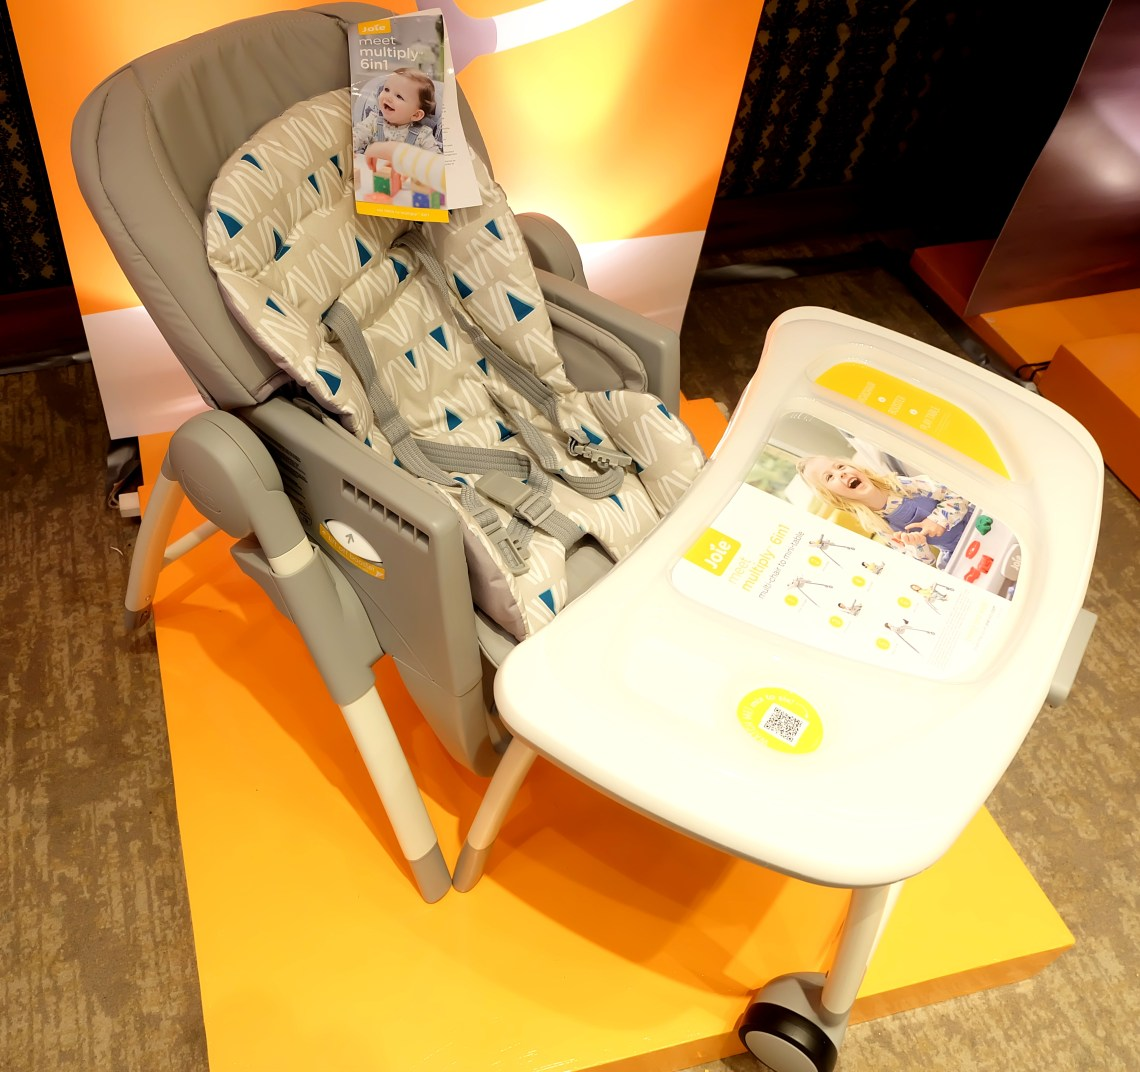 dyosathemomma: Joie car seat, stroller launch with Camille Prats and Nala as Brand Ambassador